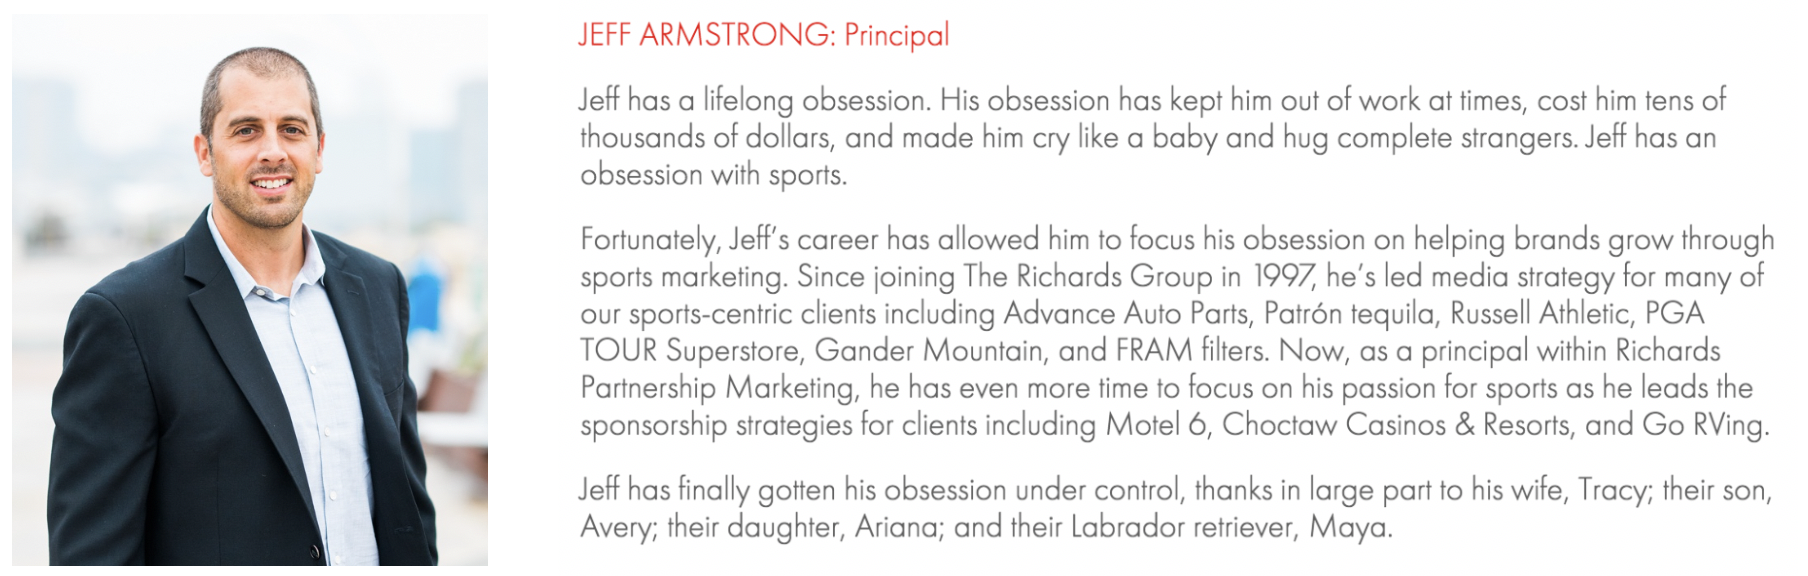 Jeff's bio from The Richards Group website